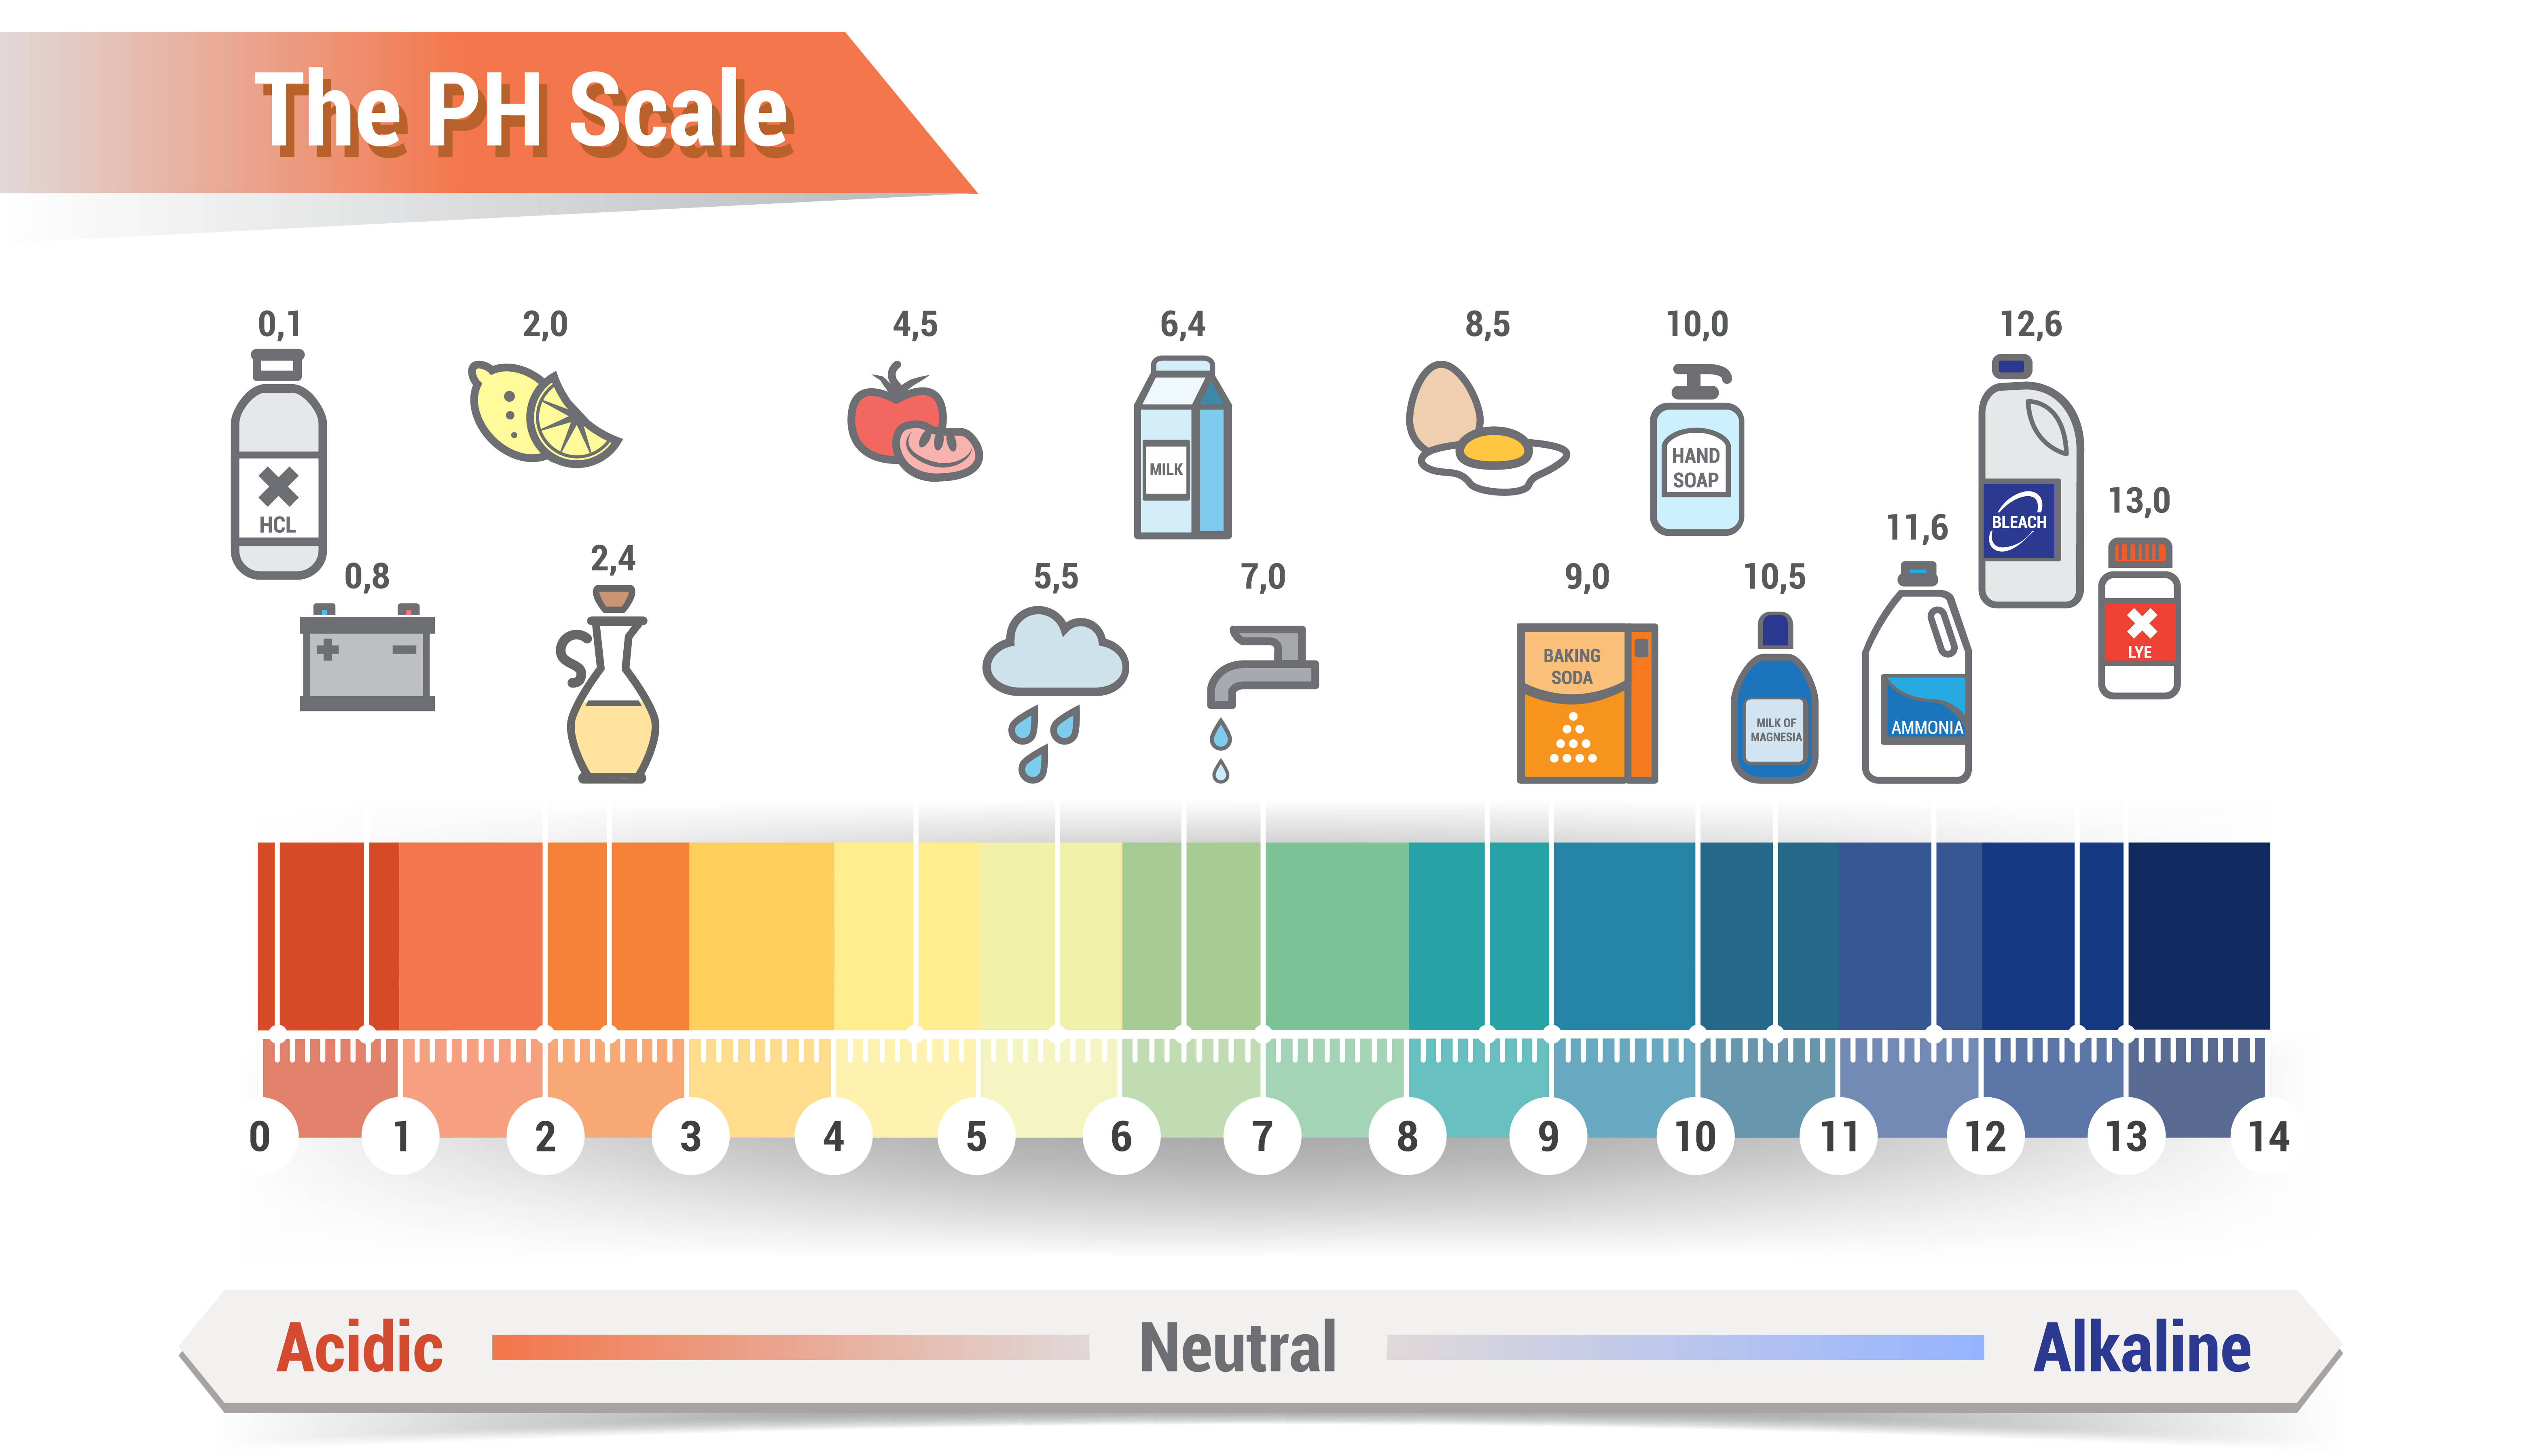 The PH Scale - From Acidic to Alkaline